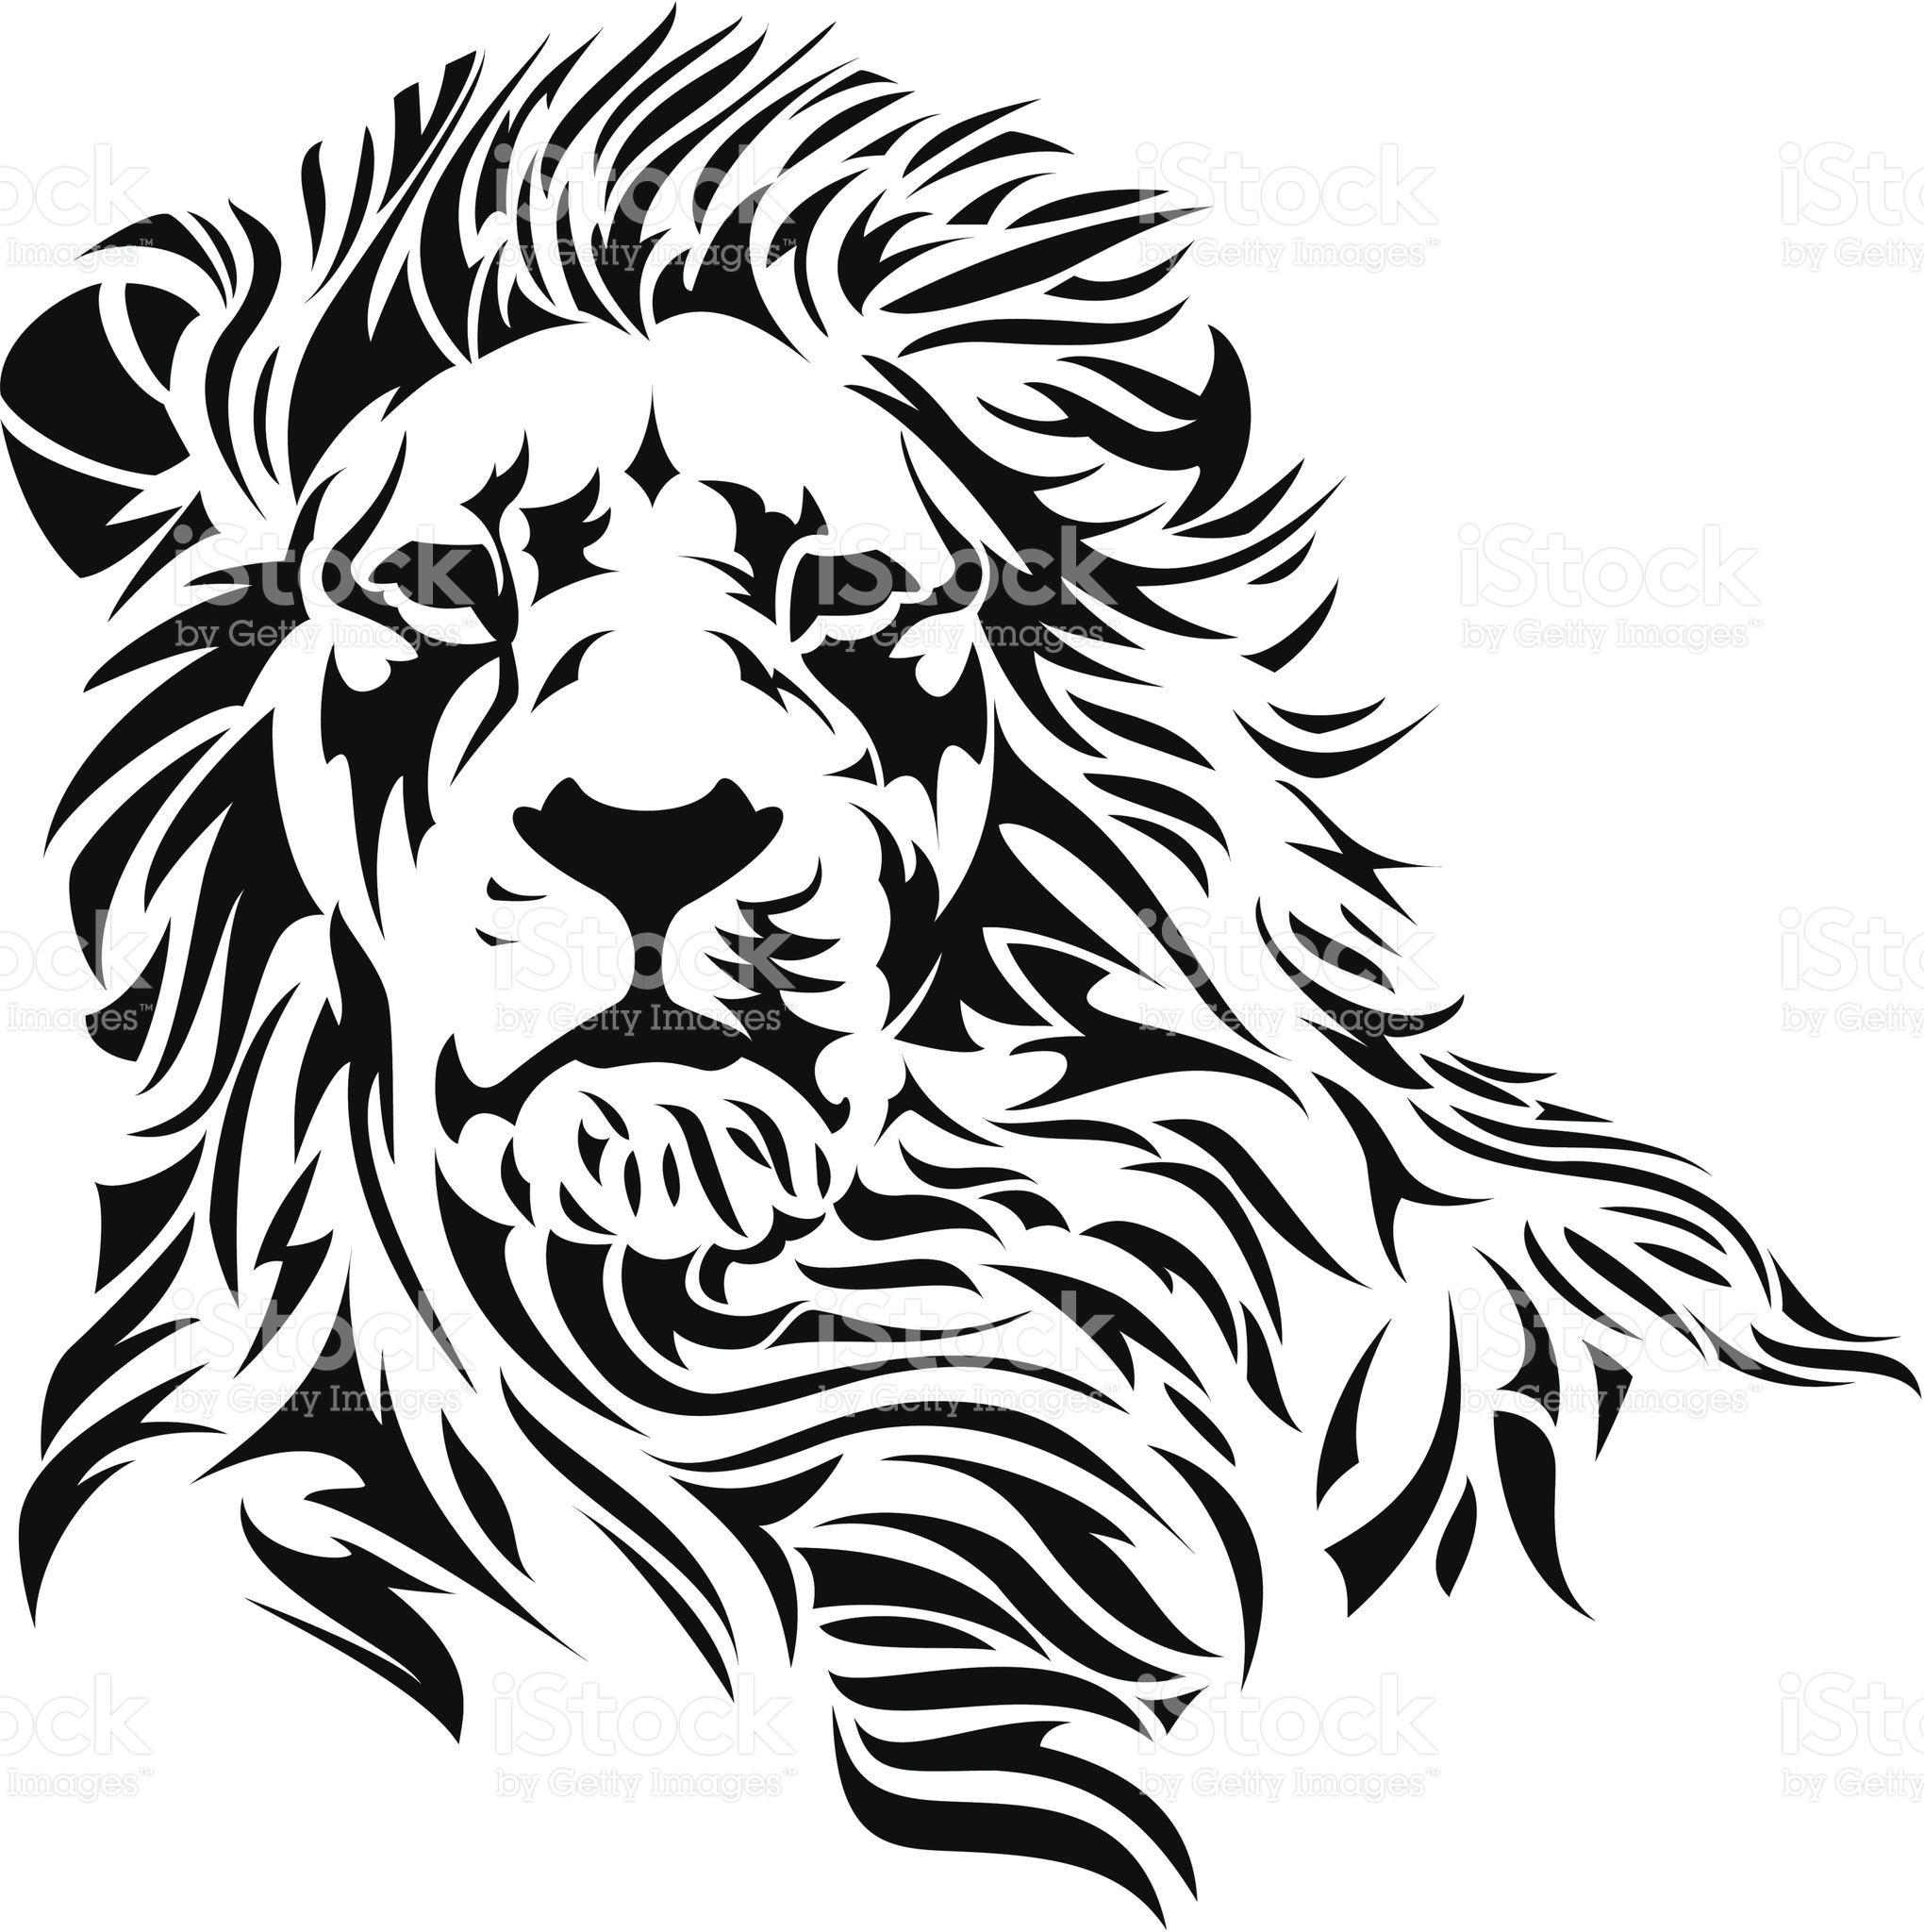 2040x2048 A Lion Head In Black And White. Lions